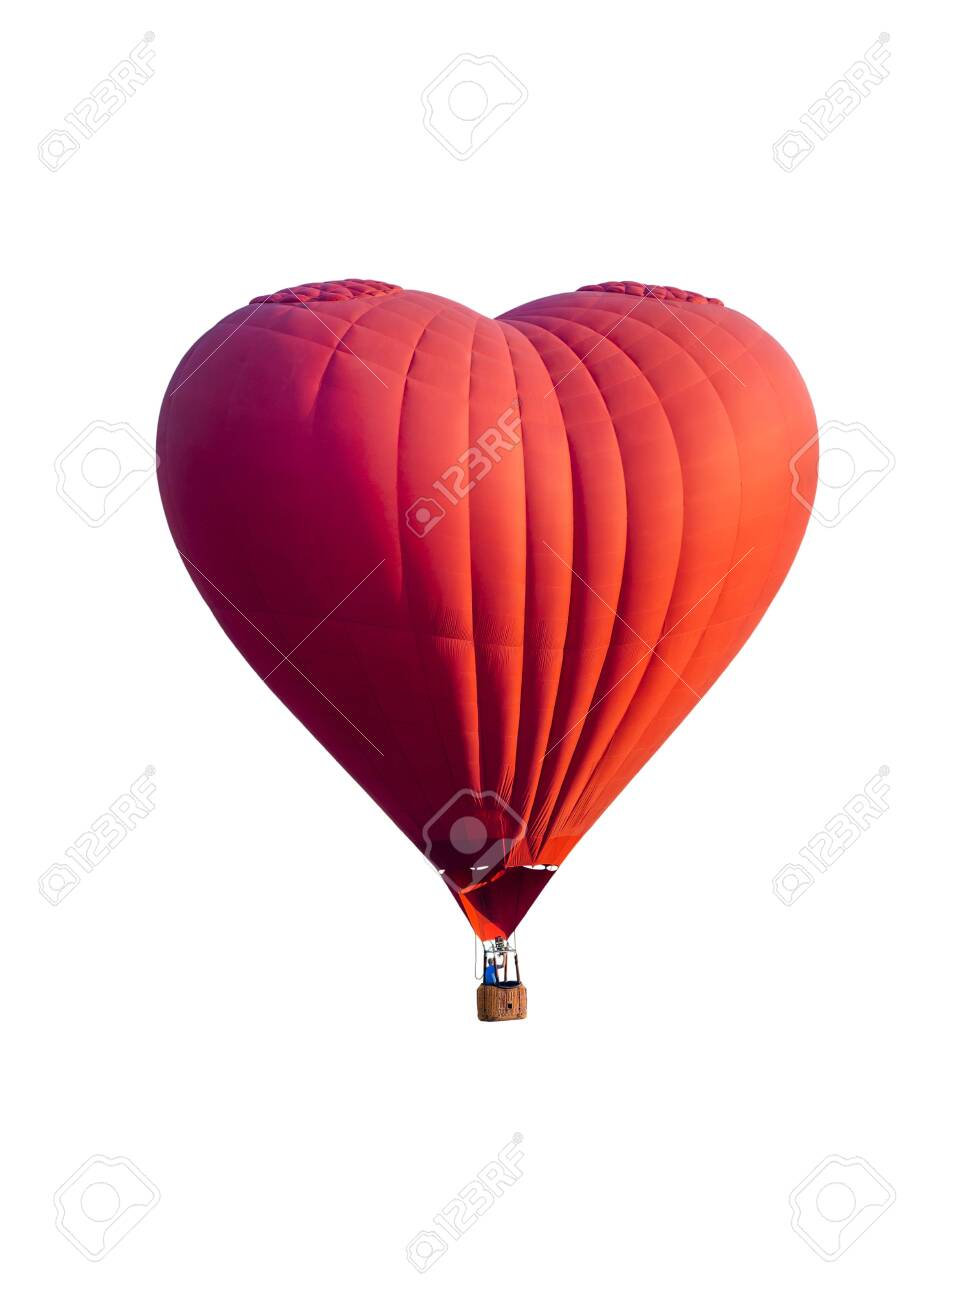 Red hot air balloon in the shape of a heart isolated on white background - 125580596